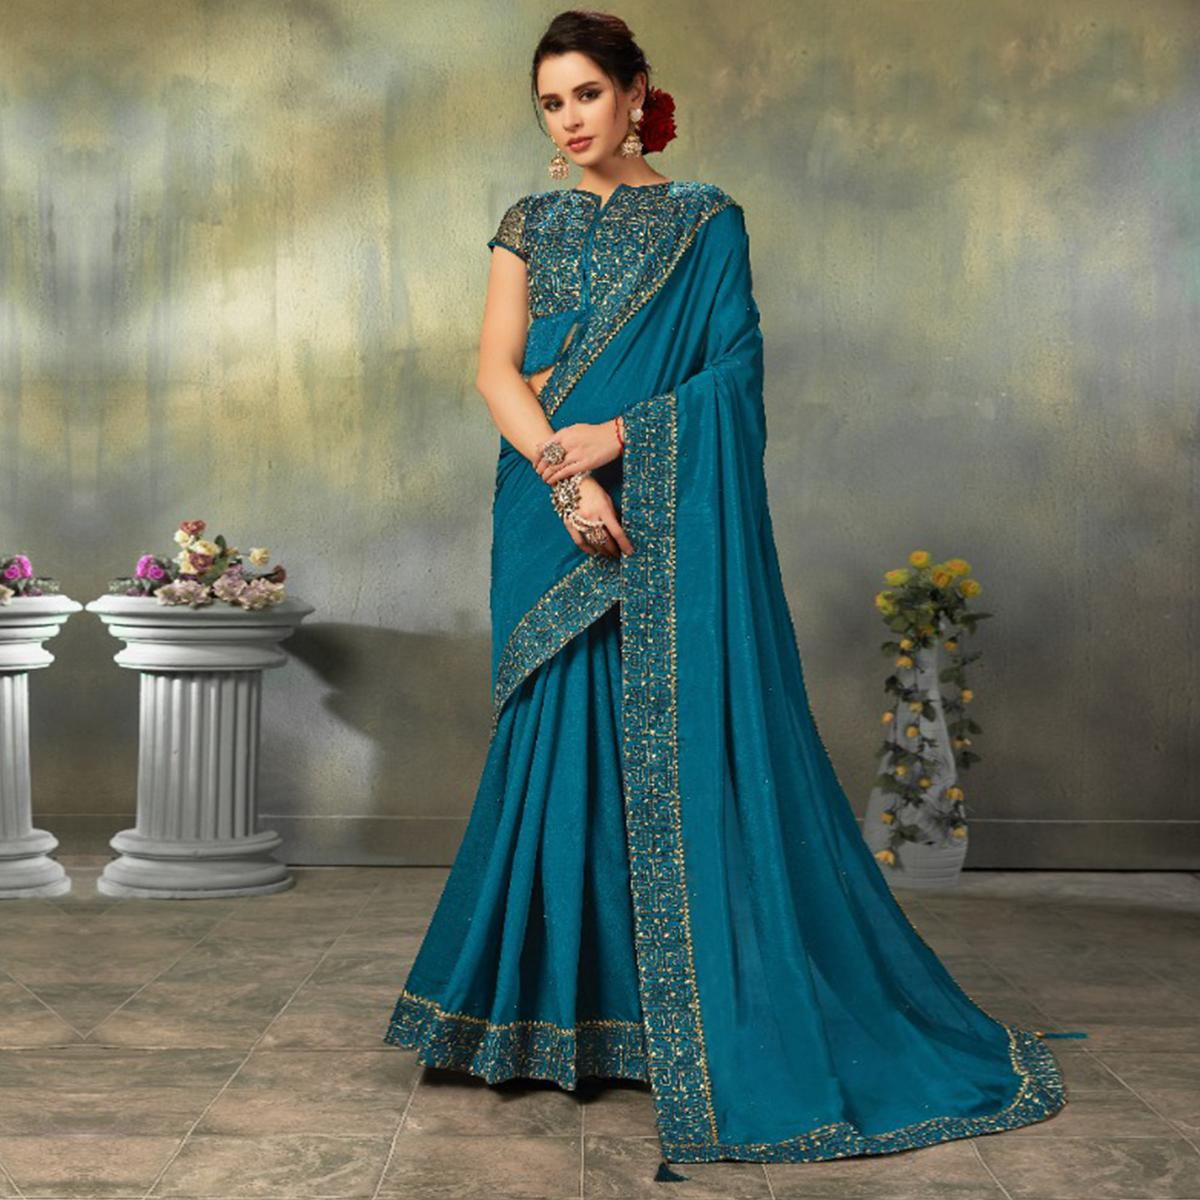 Indian Women Teal Blue Colored Two Tone Silk Embroidered Border Fancy Designer Saree